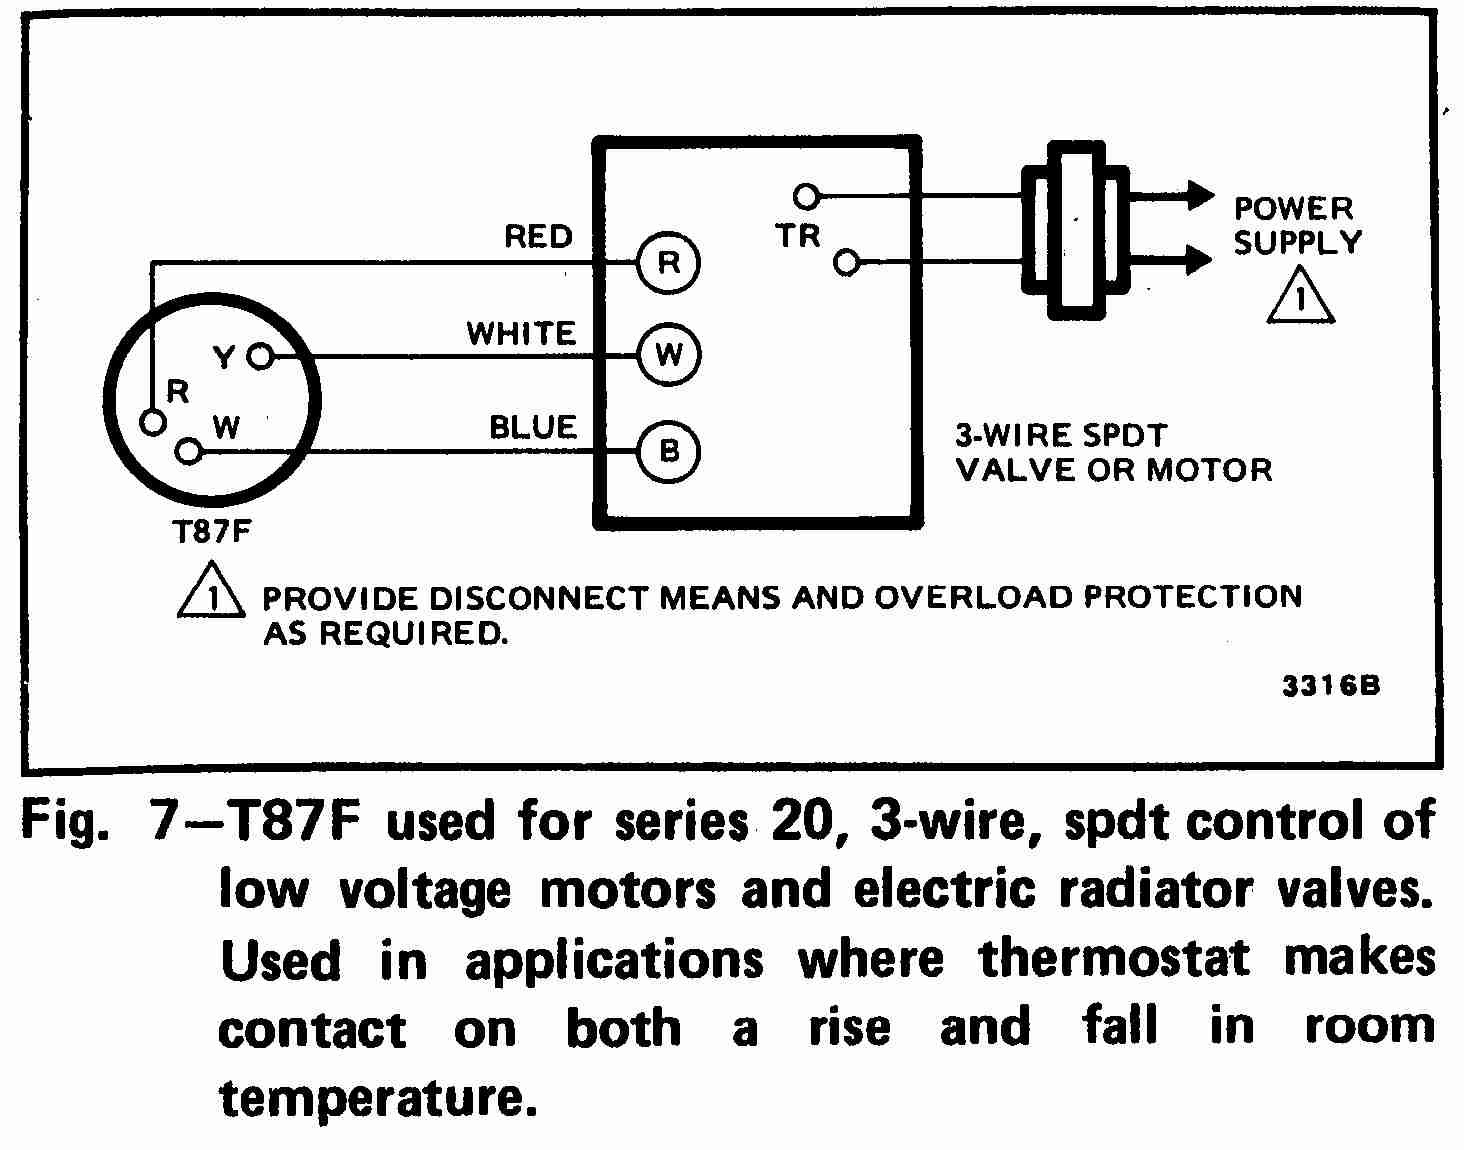 Williams Wall Heater Wiring Diagram | #1 Wiring Diagram Source on